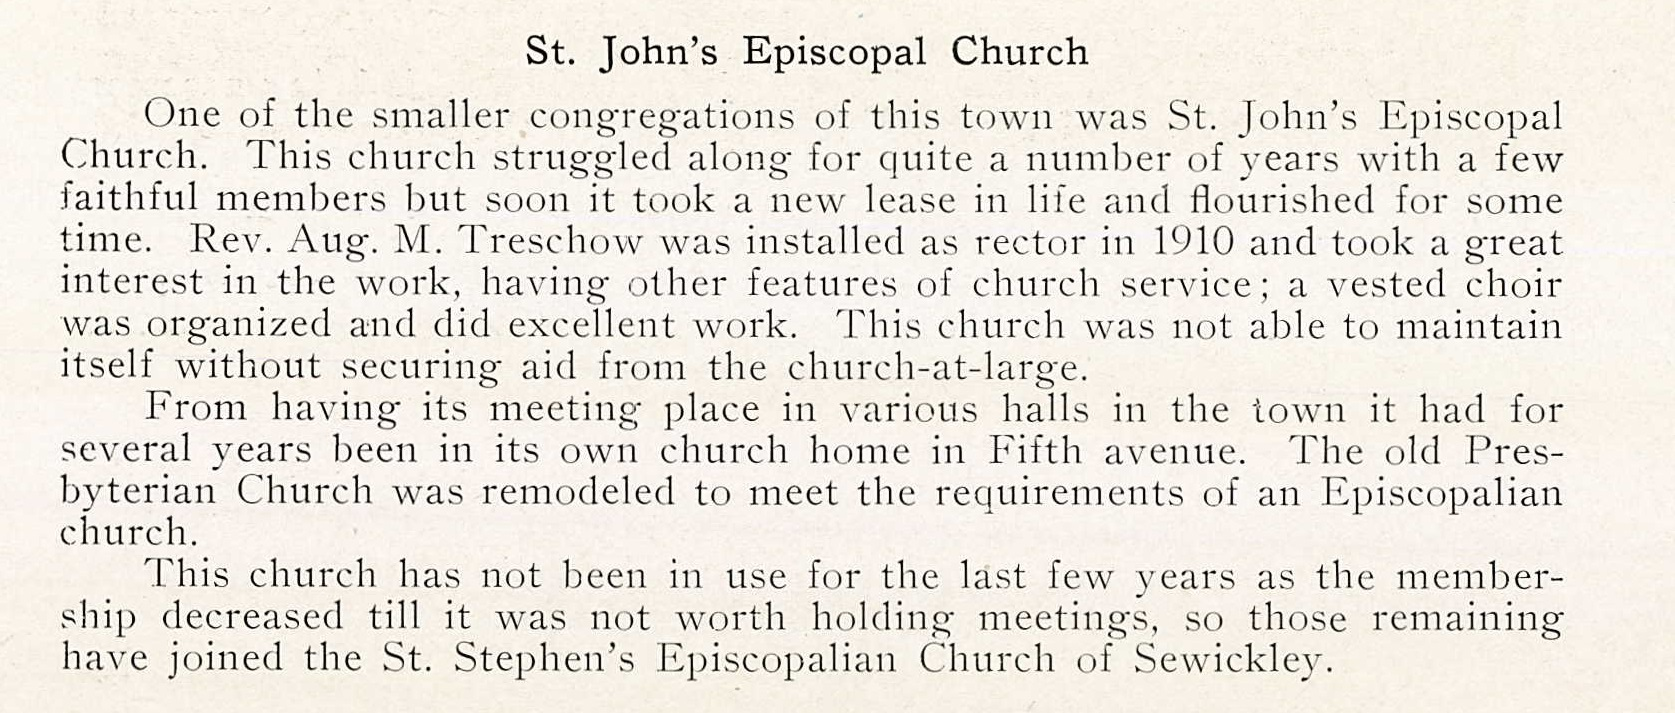 History taken from the 1924 Coraopolis High School Review.